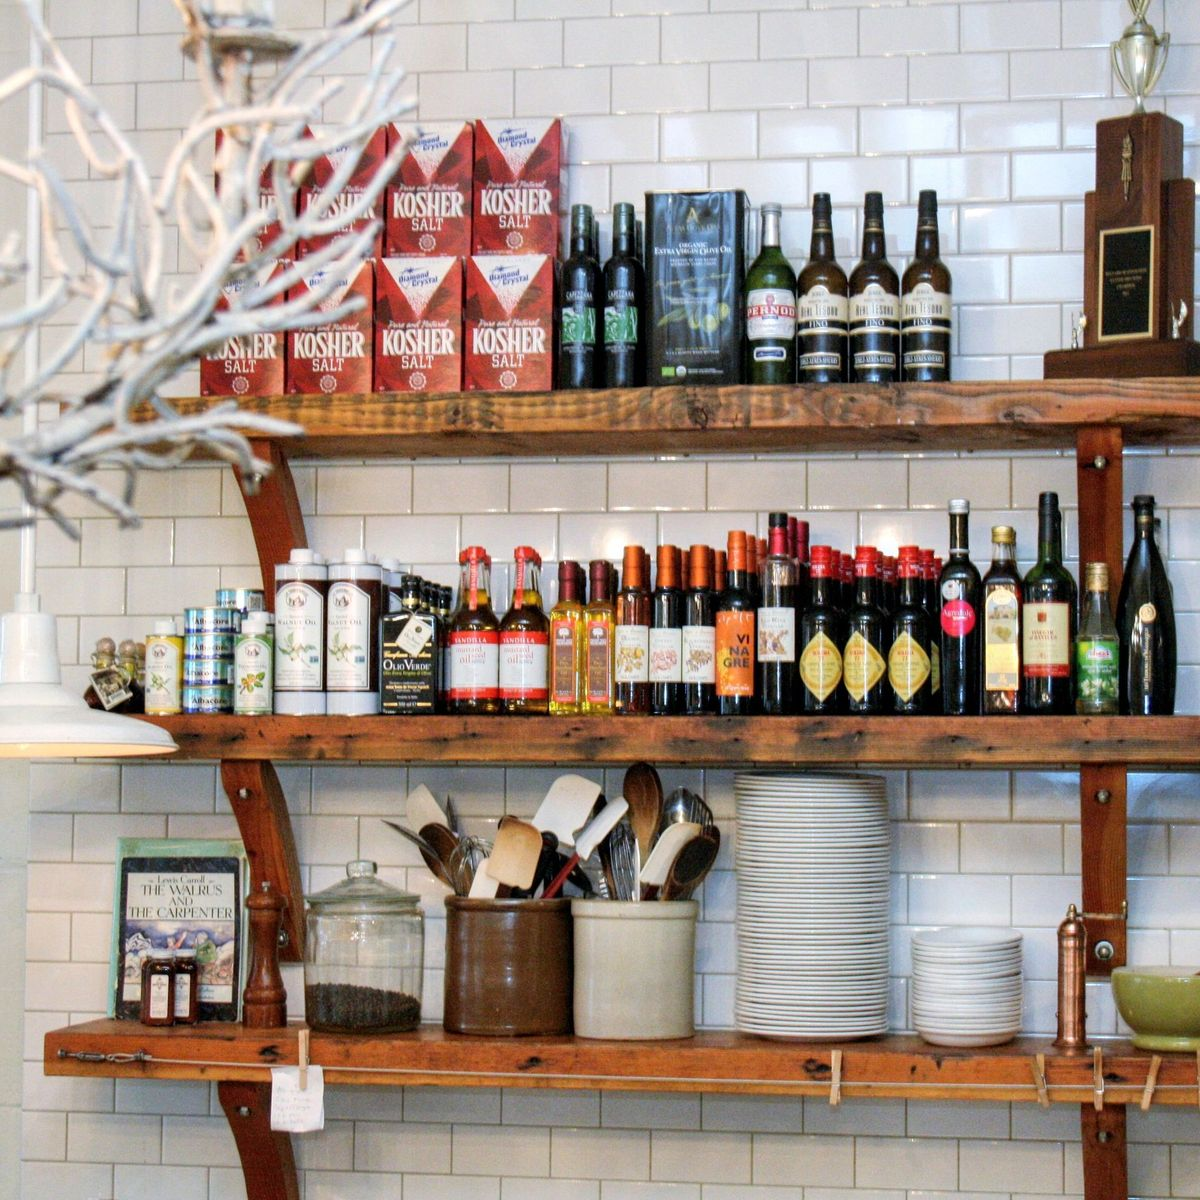 Restaurant pantry tips were stealing for our own kitchens